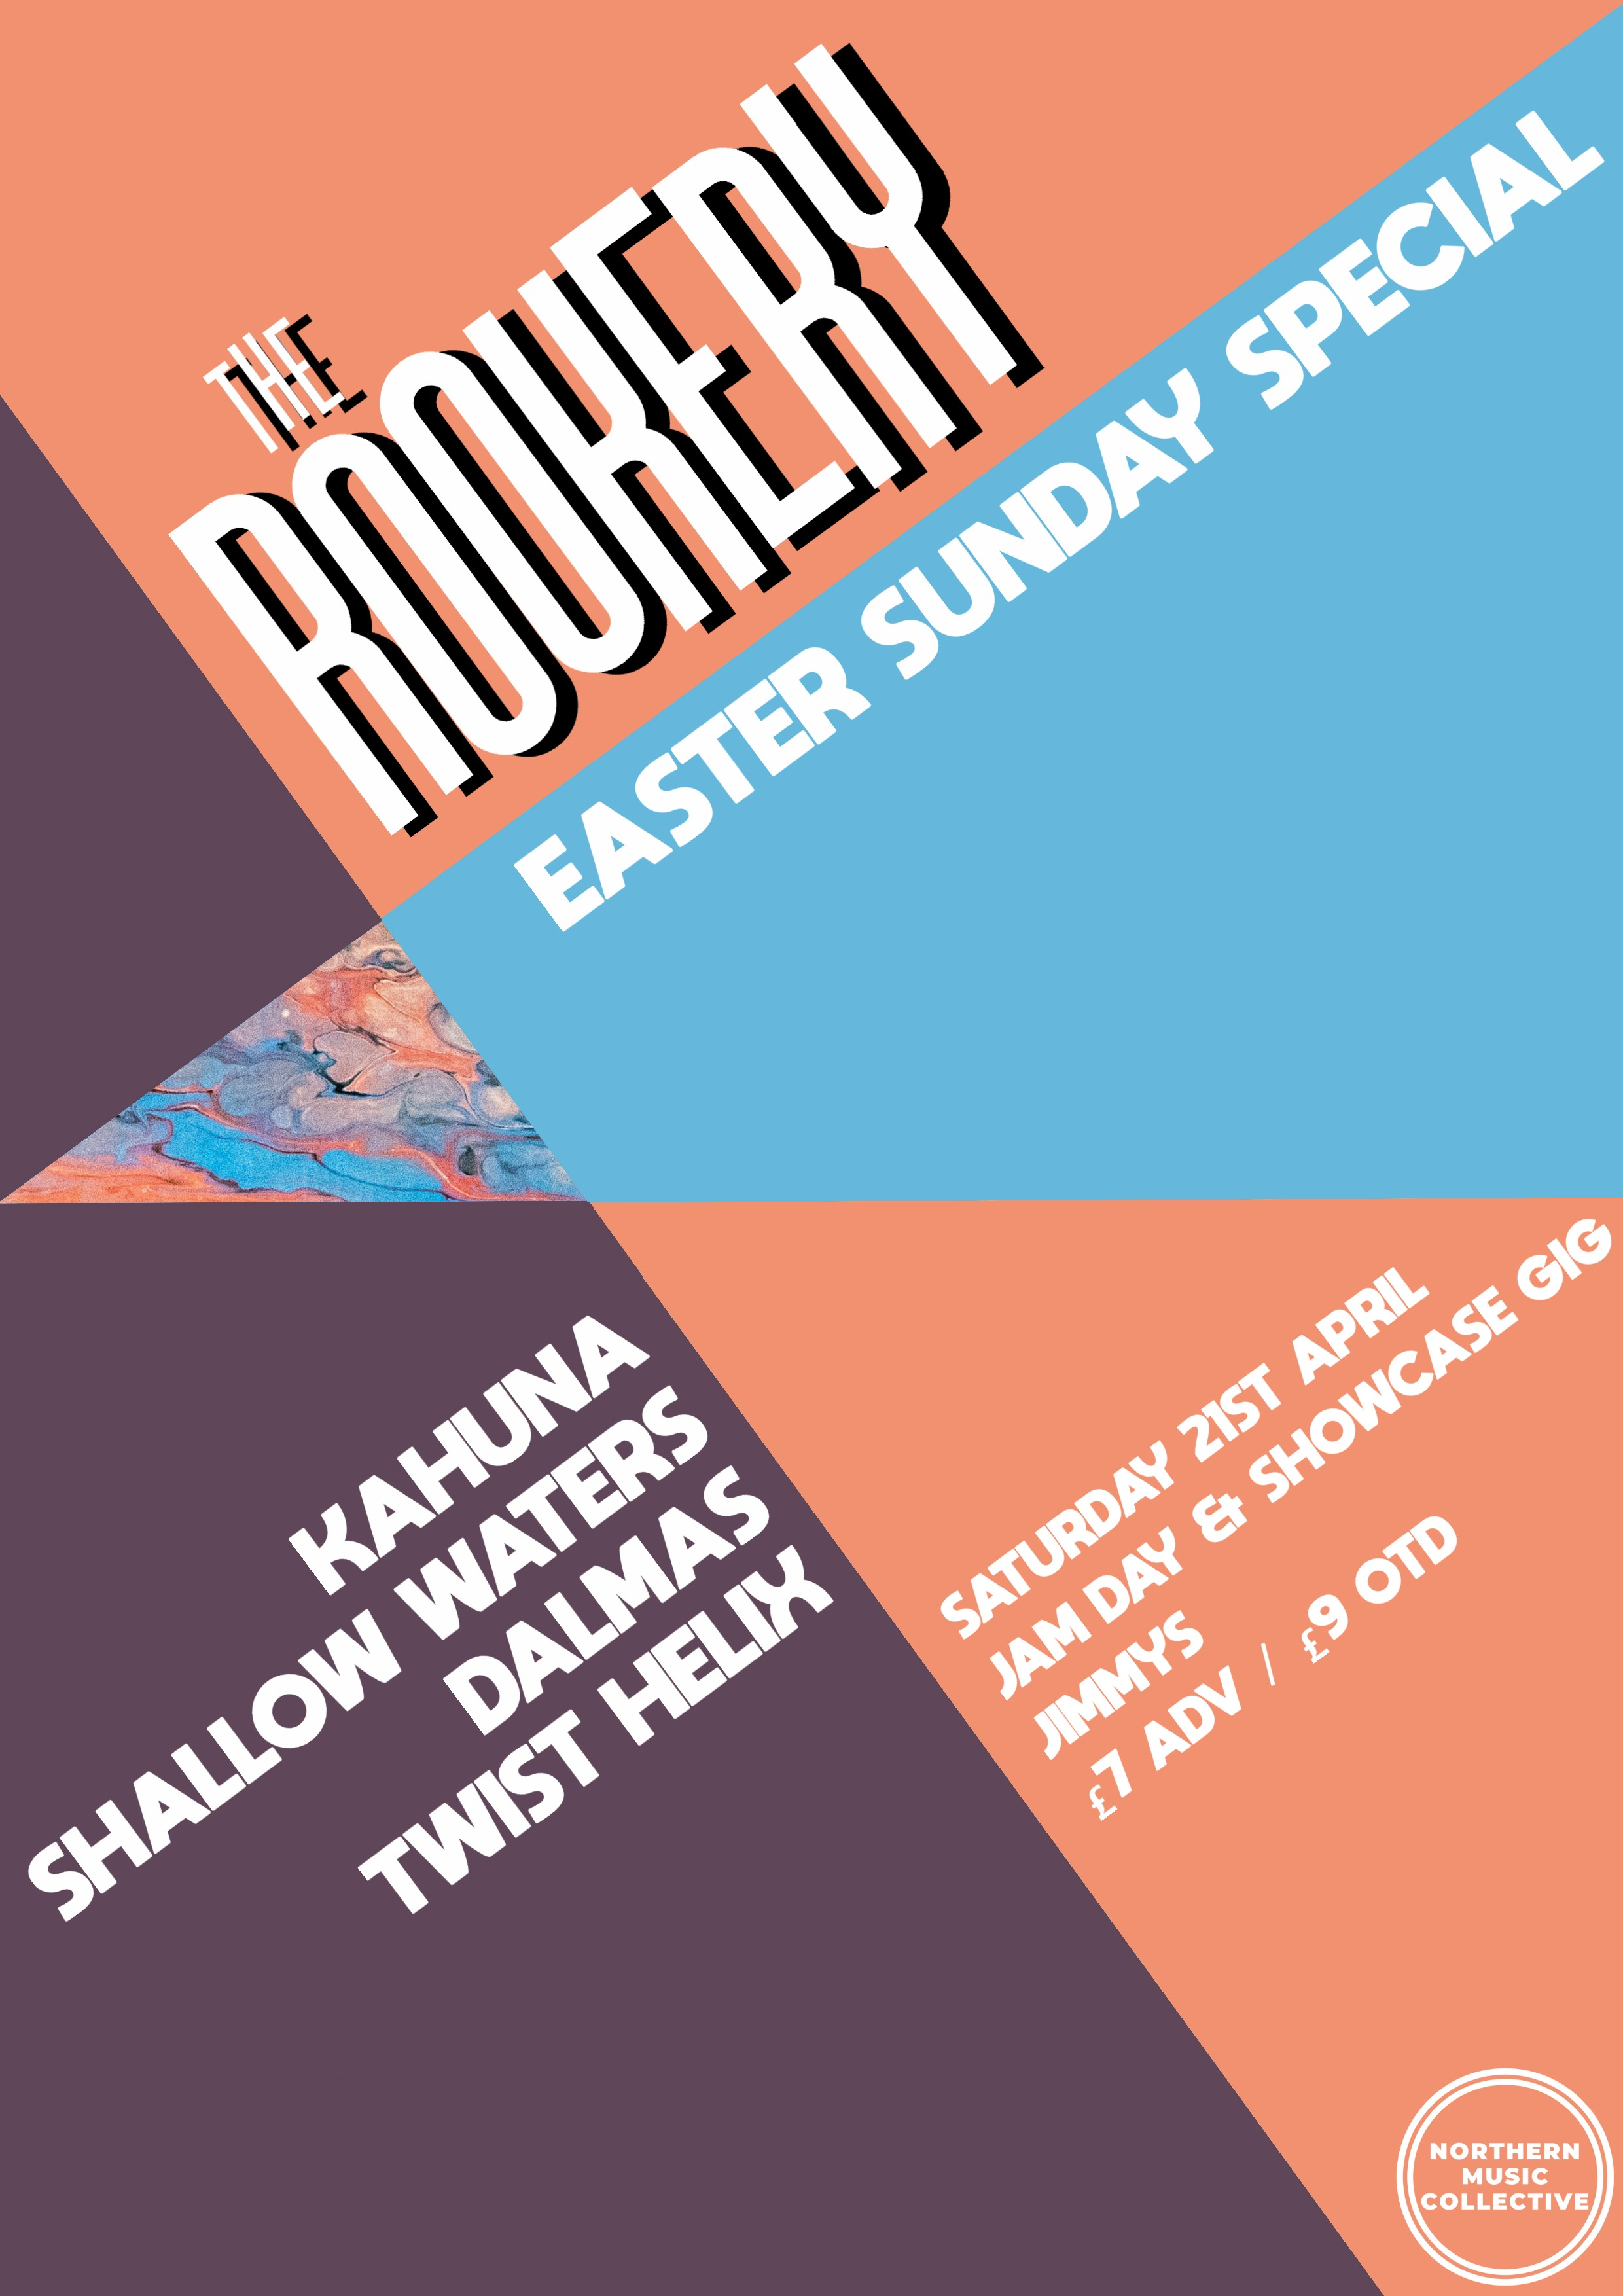 Easter Sunday 21:04:19 poster 2 A4.jpg